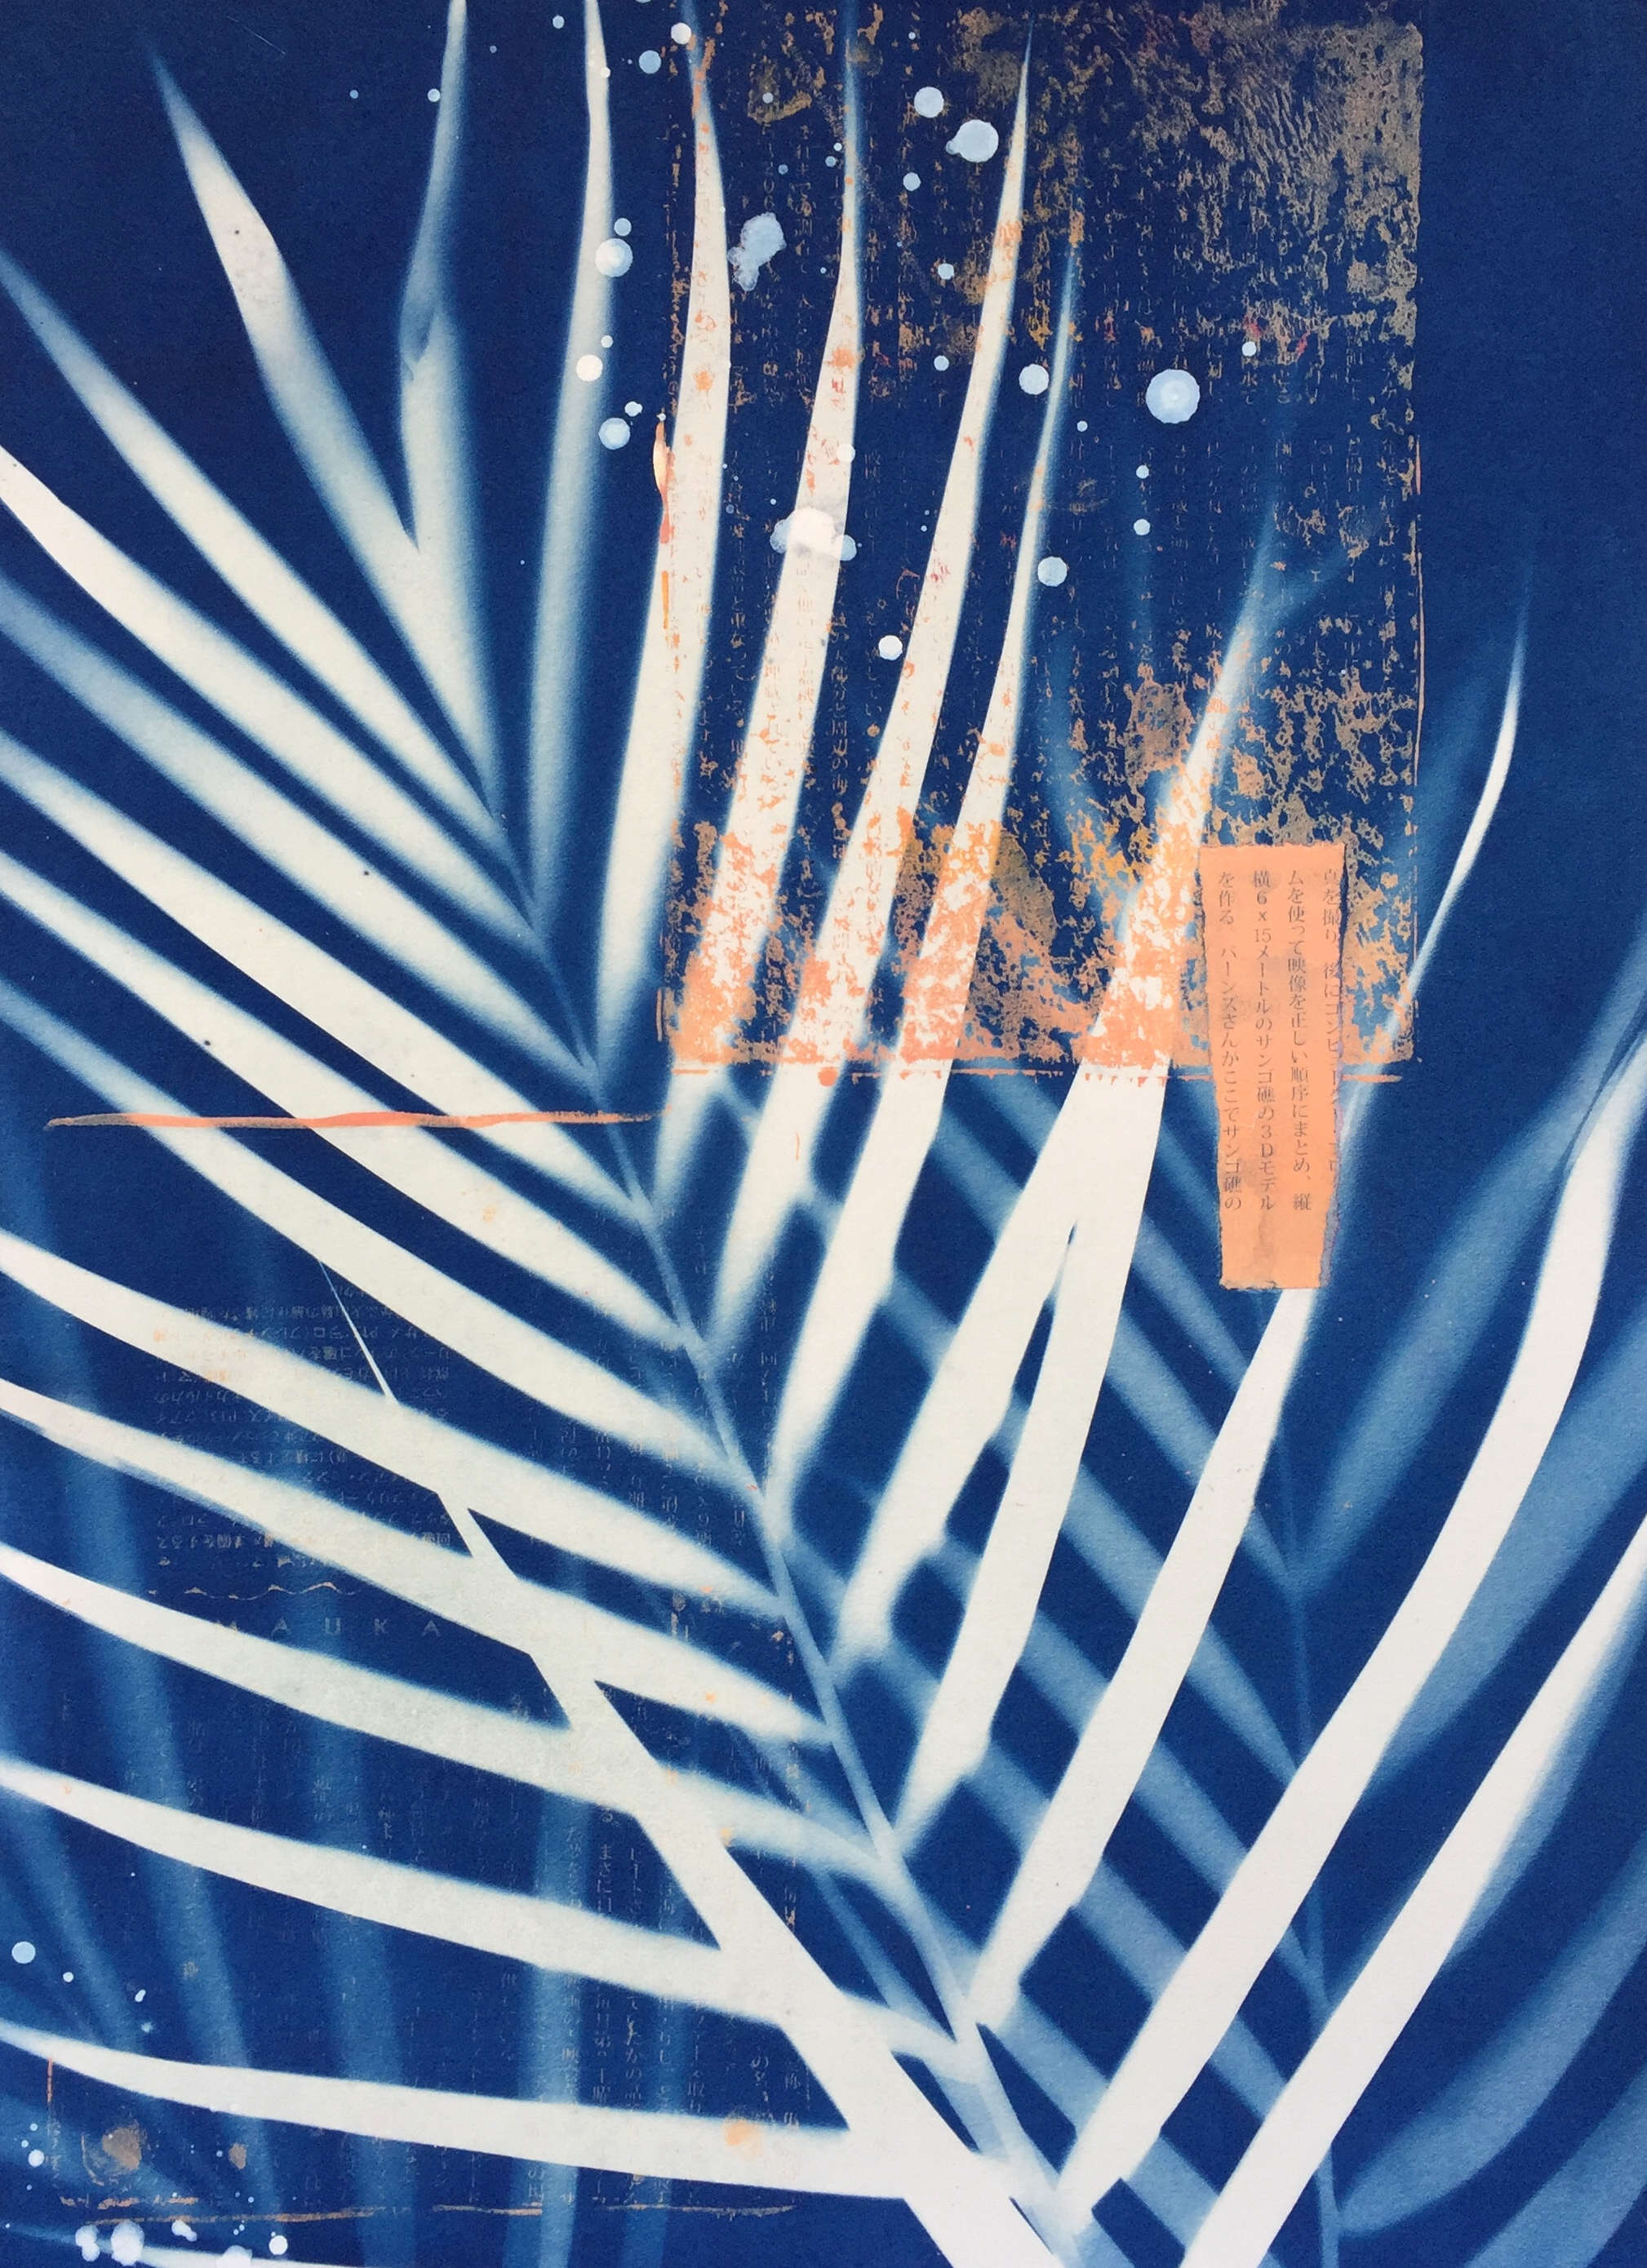 Star Sprinkled Palms 1  | cyanotype, collage, and monoprint, framed | 16 x 20 | $300